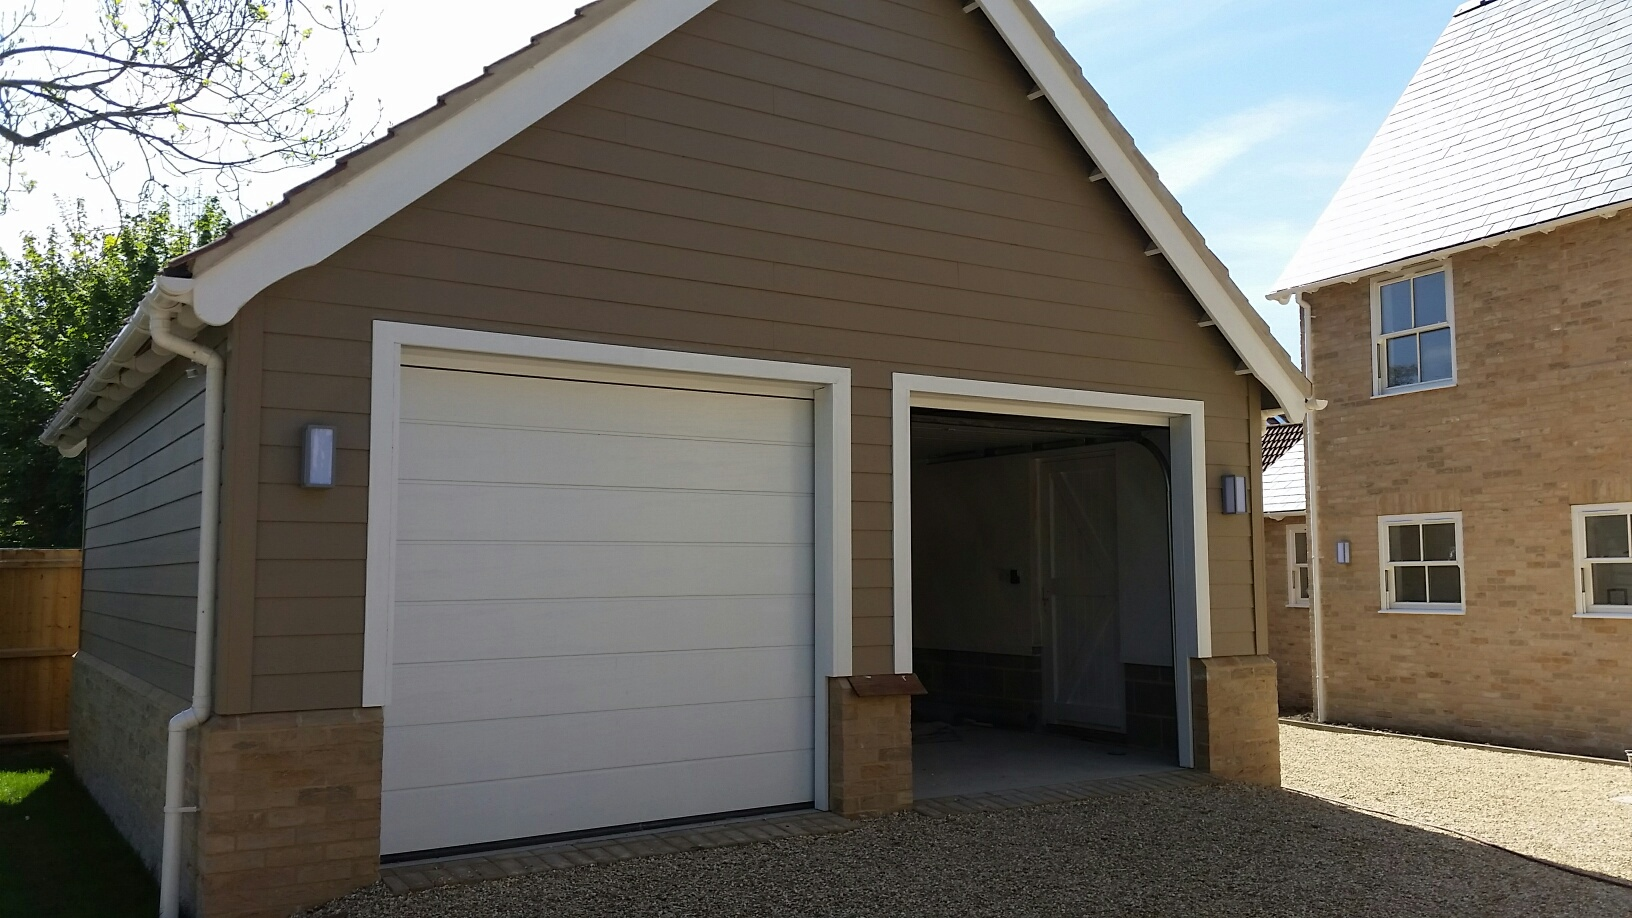 Hormann Medium Ribbed Sectional Garage Doors Automation